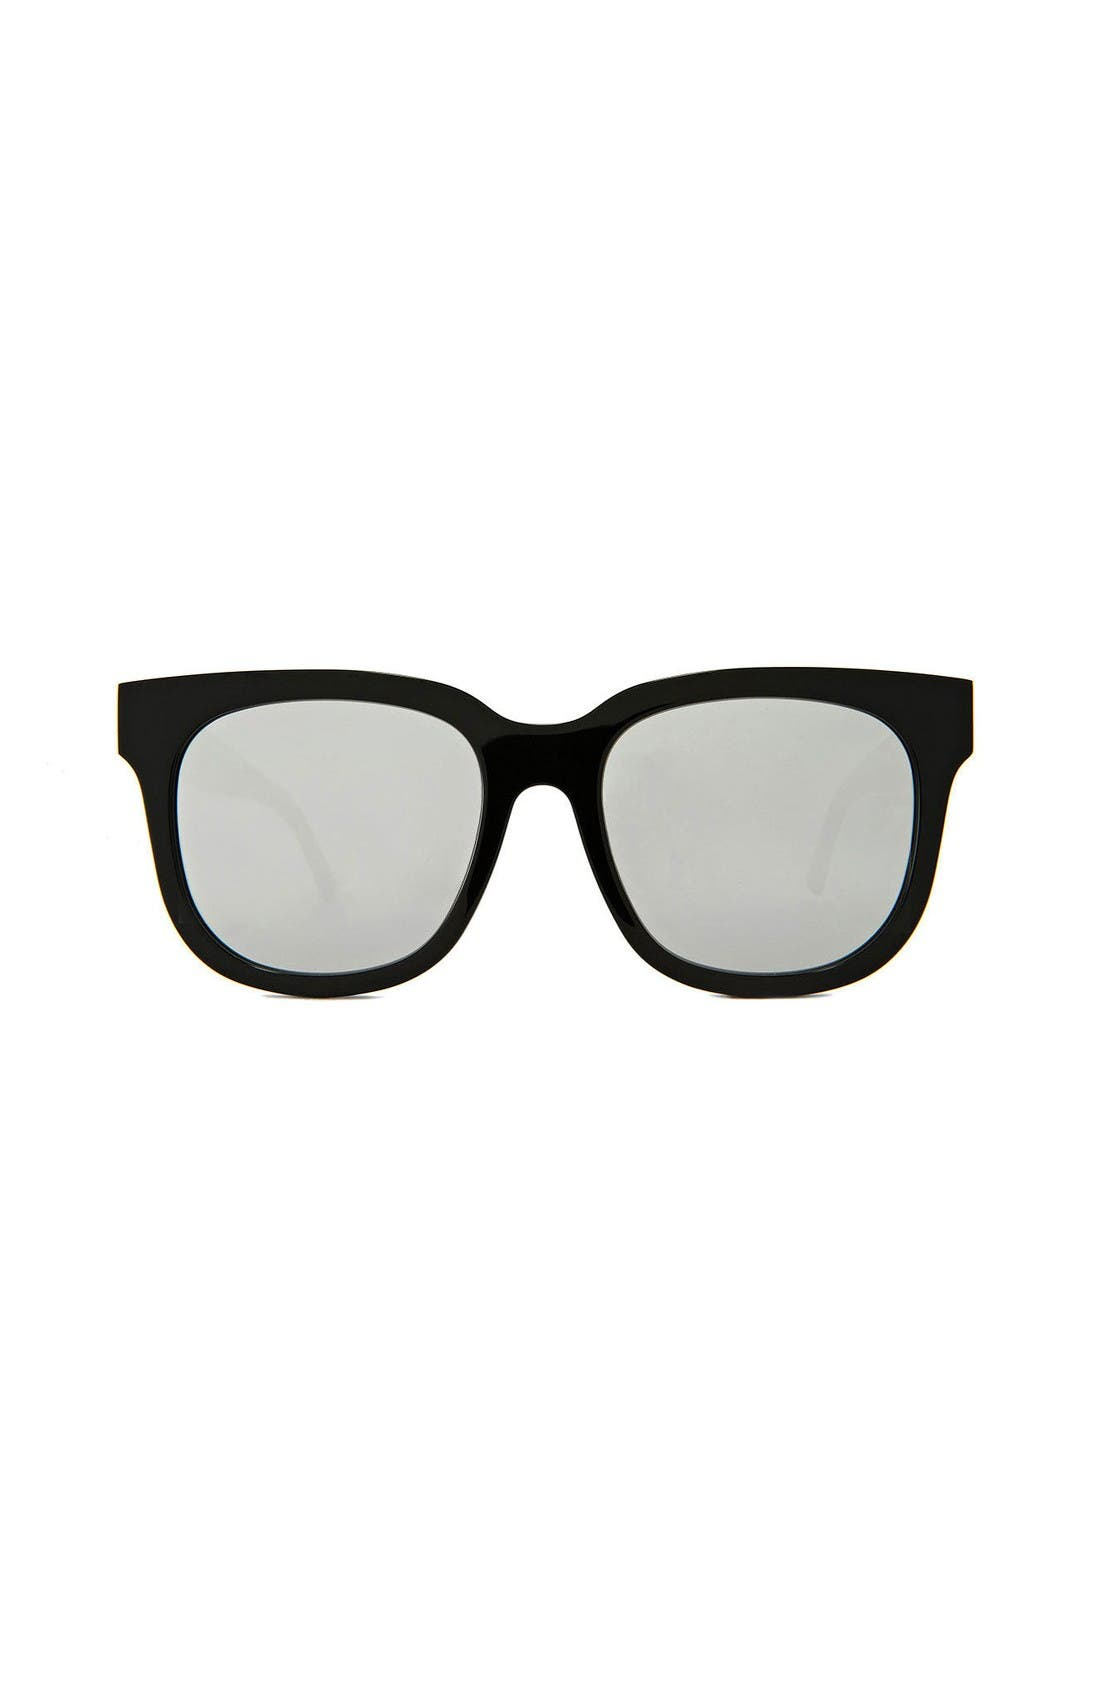 Alternate Image 1 Selected - Gentle Monster Didi D 56mm Square Sunglasses